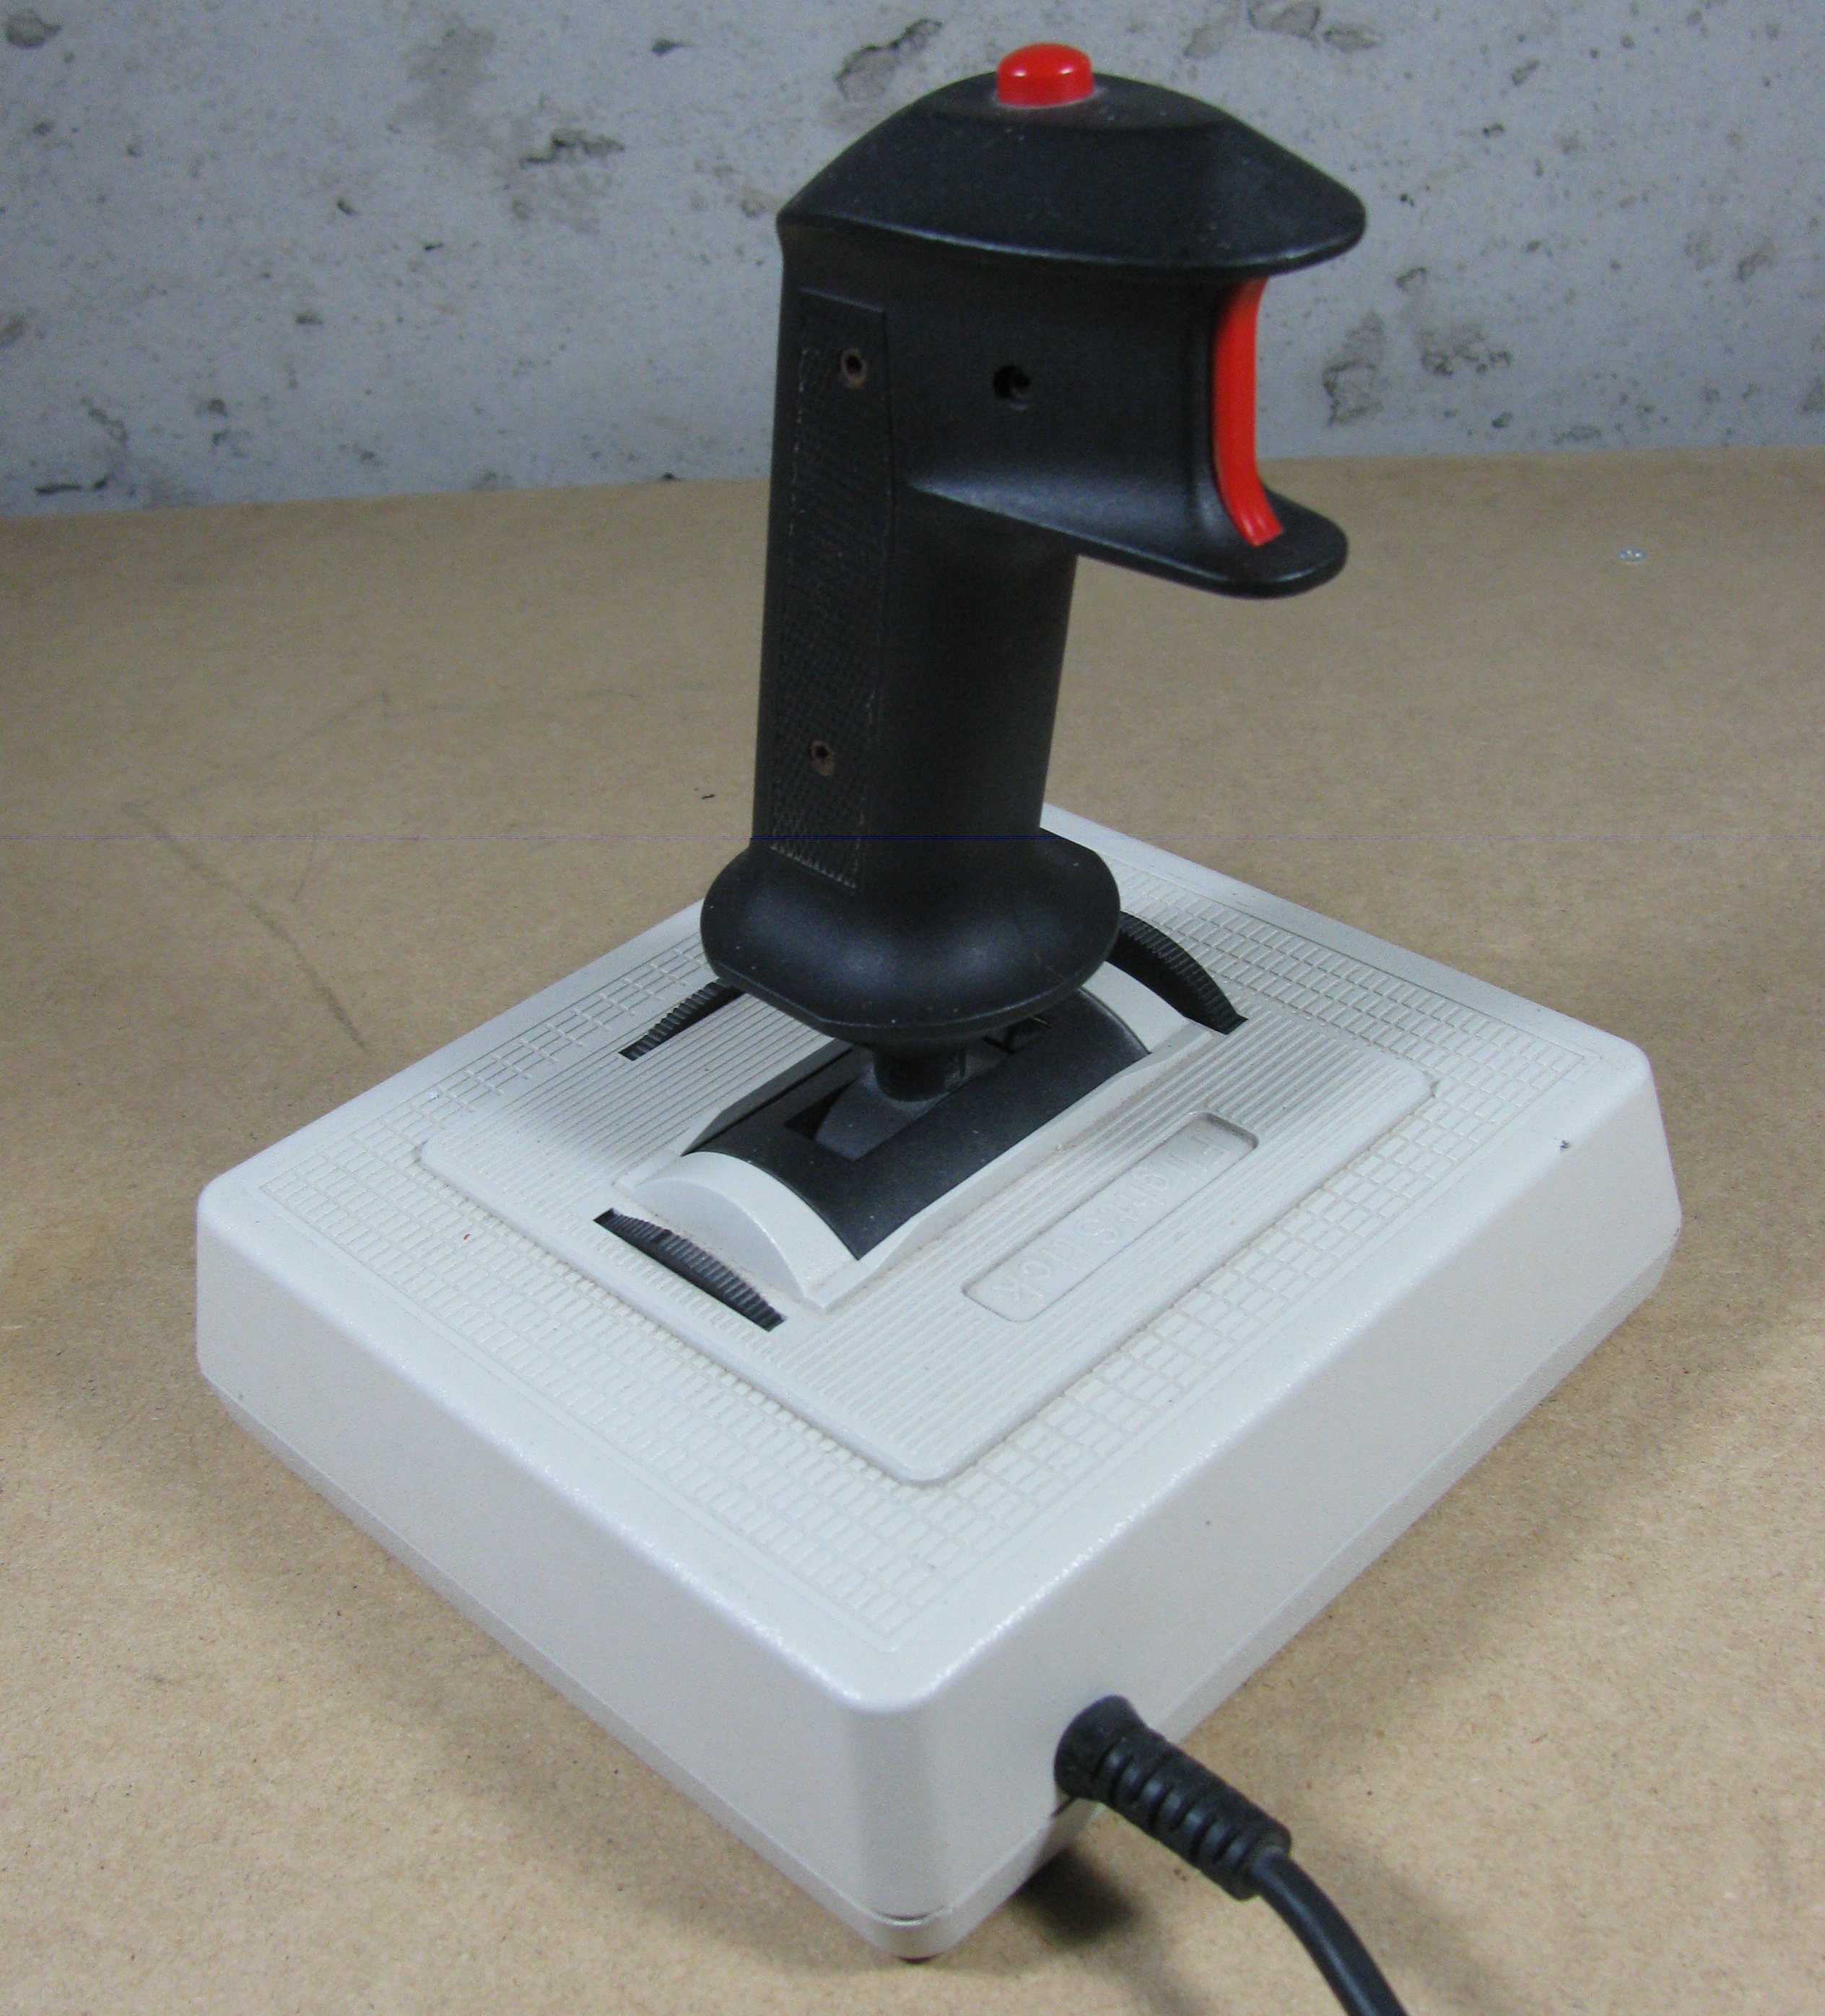 Joysticks | amazon. Com.